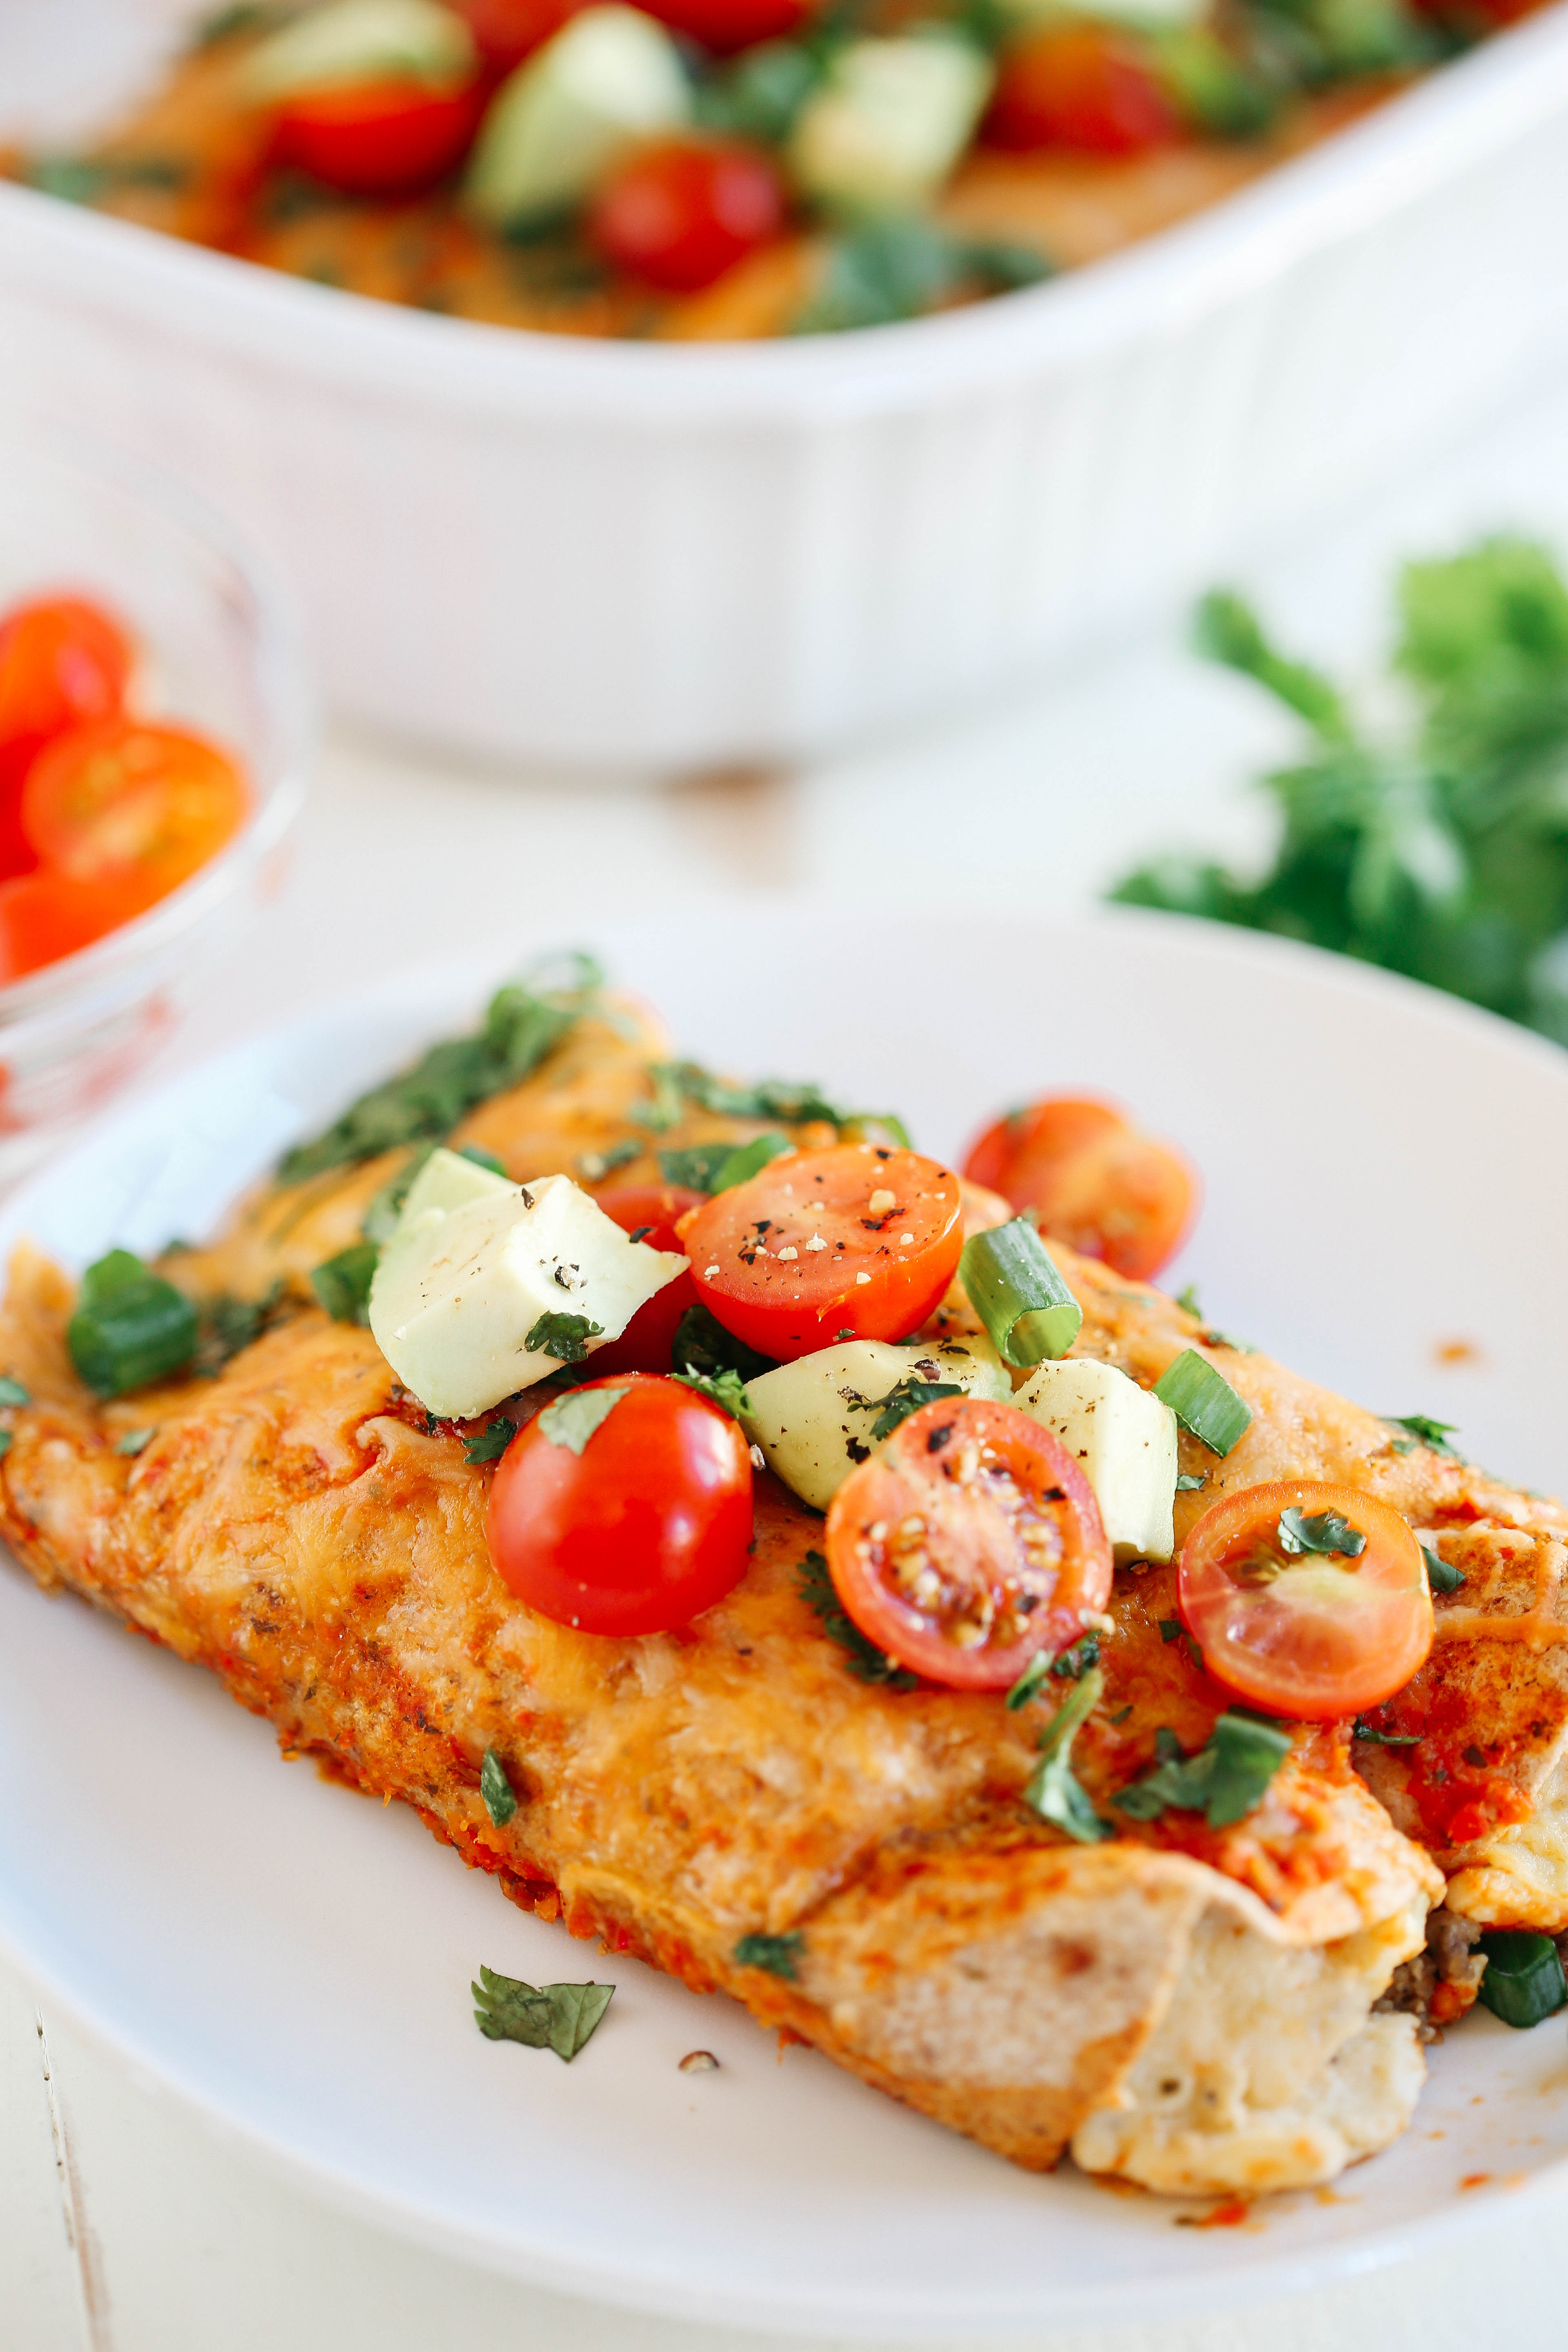 Healthy Breakfast Enchiladas that are cheesy, spicy and full of so much flavor and can easily be prepped ahead of time for a quick delicious breakfast!